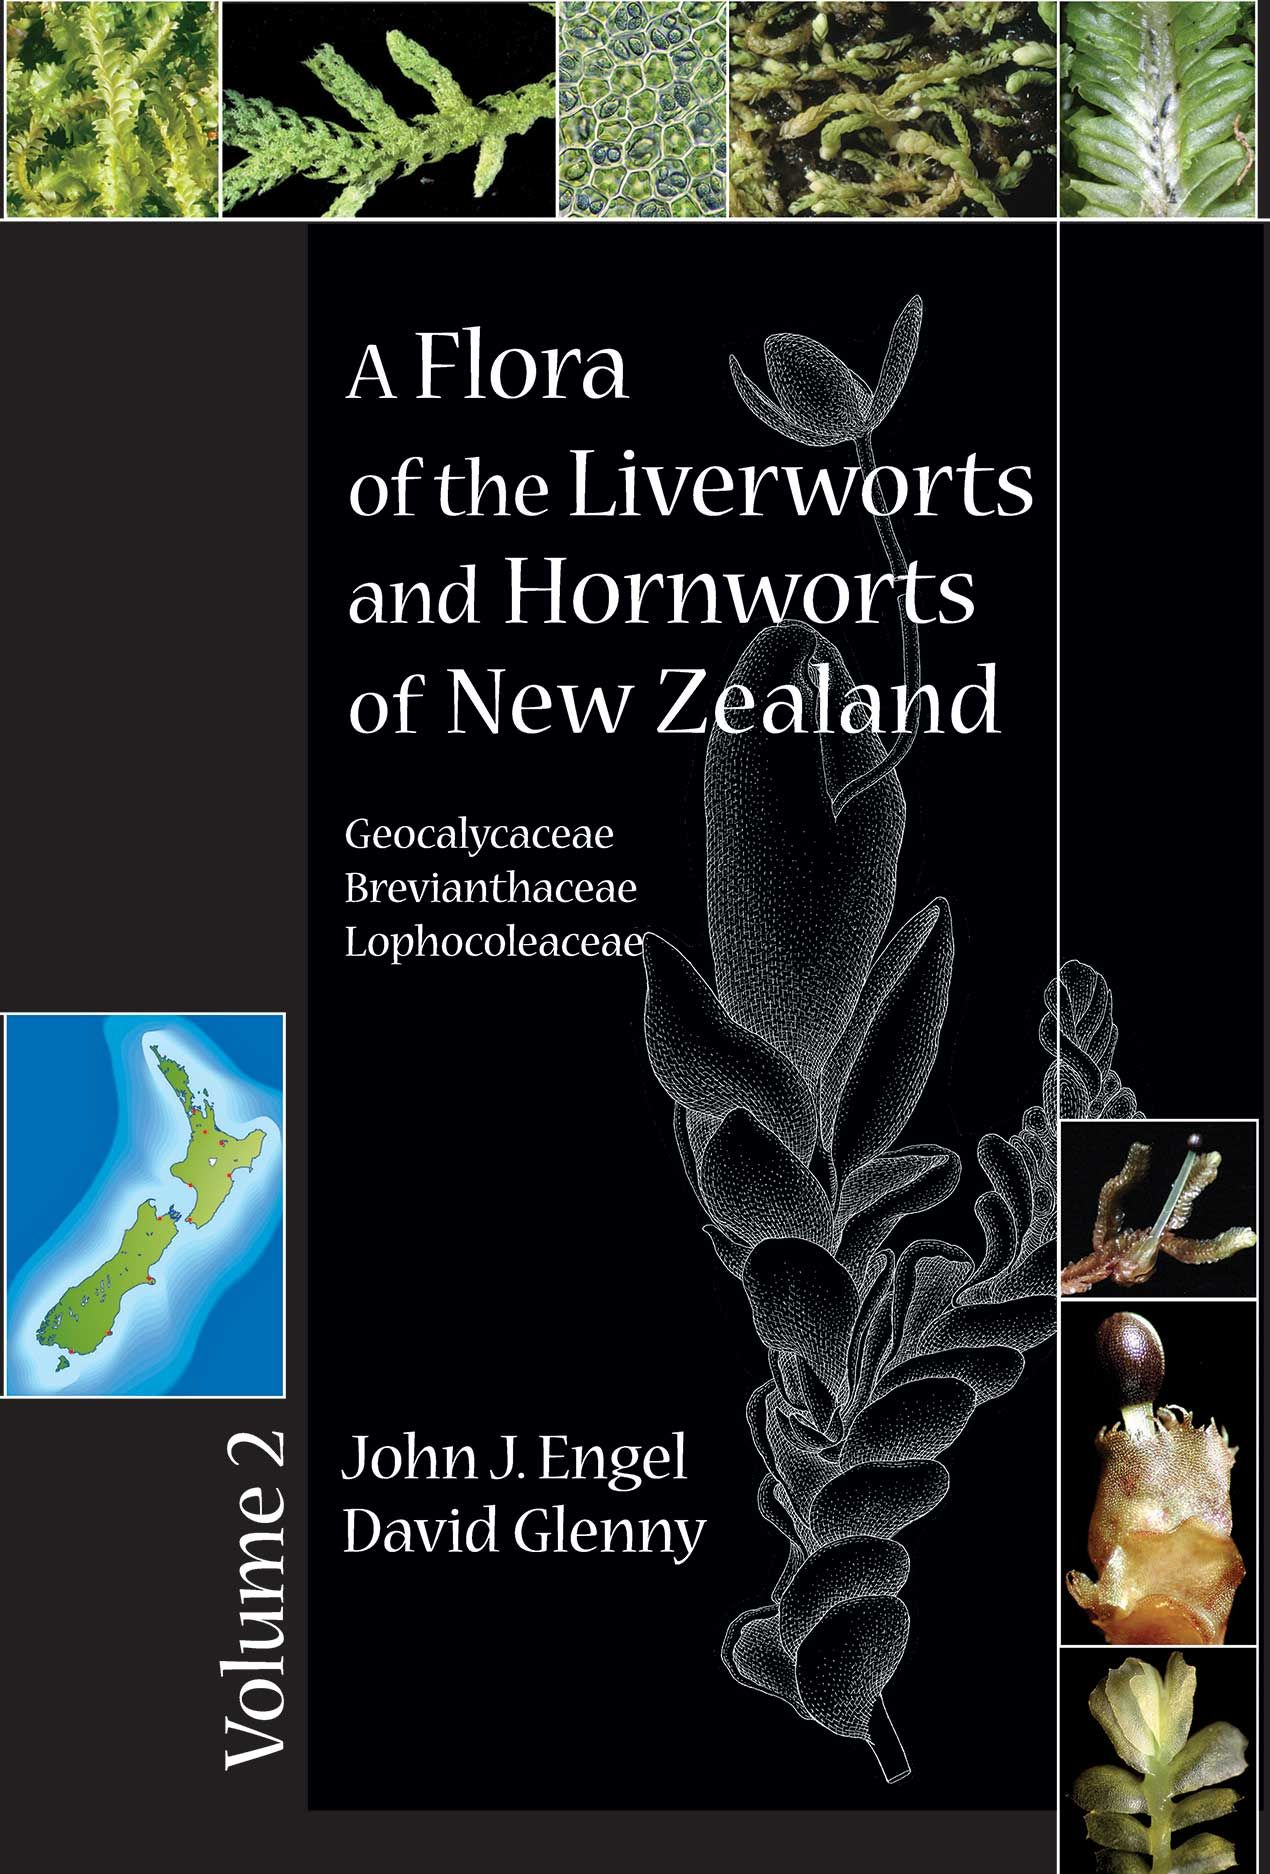 A Flora of the Liverworts and Hornworts of New Zealand: Volume 2